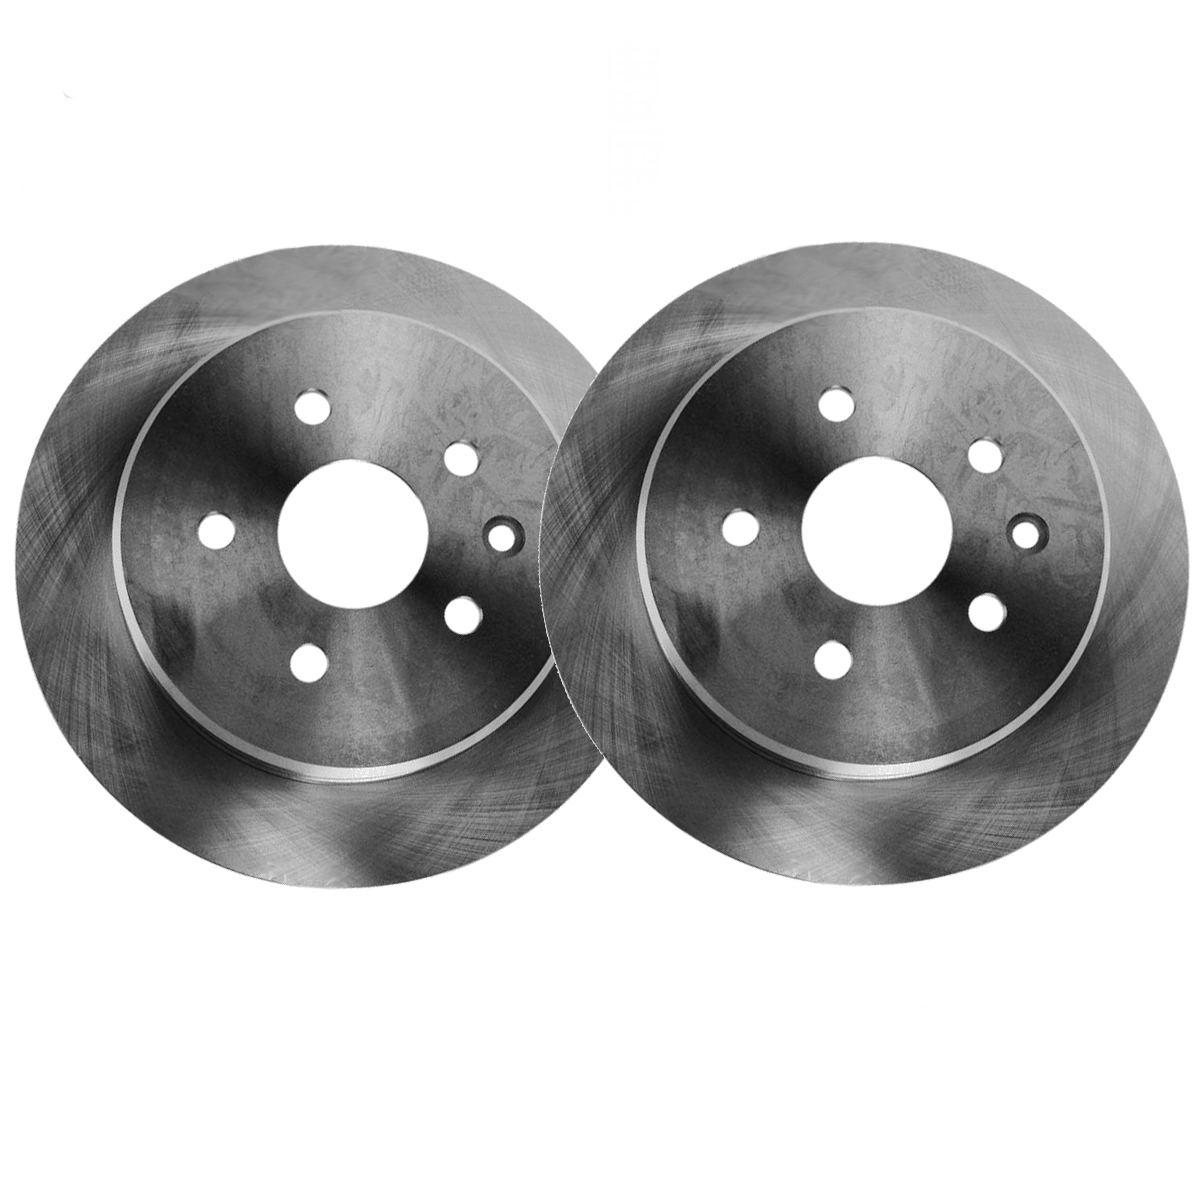 Pair (2) (269MM) Rear Premium Brake Rotors For Models w/Rear Disc Brakes Vibe tC Celica Corolla Matrix